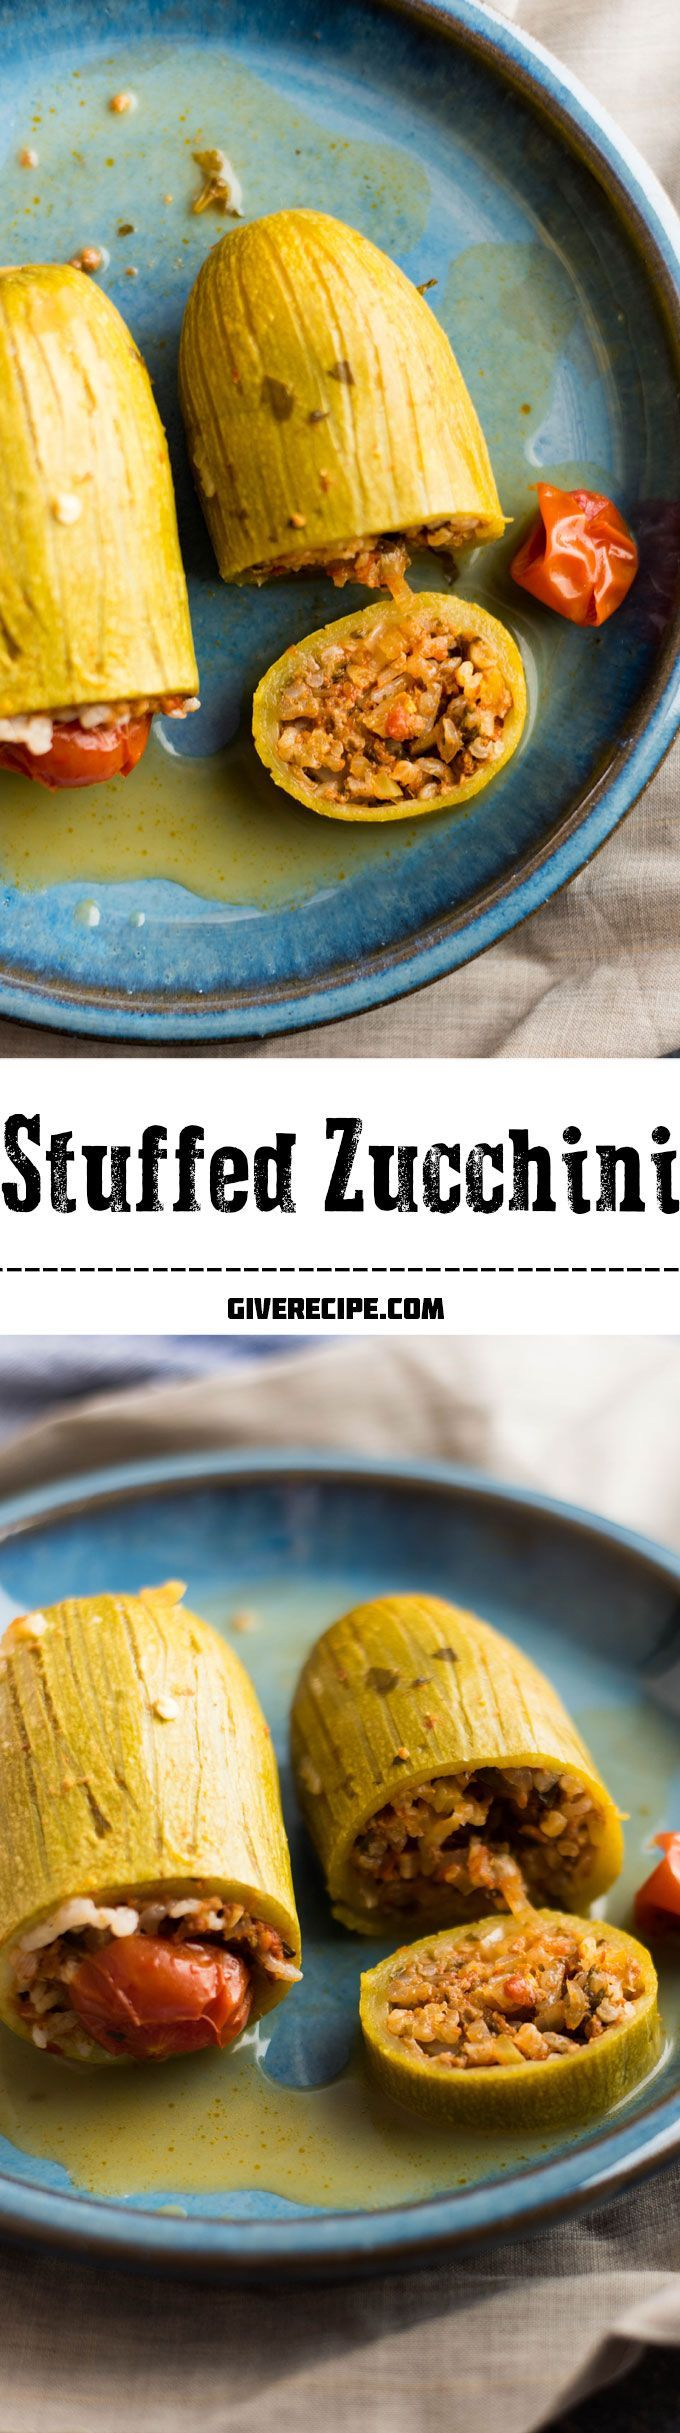 The BEST thing to make with zucchini is to stuff it. This zucchini is stuffed with a spicy mixture of rice and ground beef. You can turn it into a great vegan recipe by leaving the ground beef out. | http://giverecipe.com | #zucchini